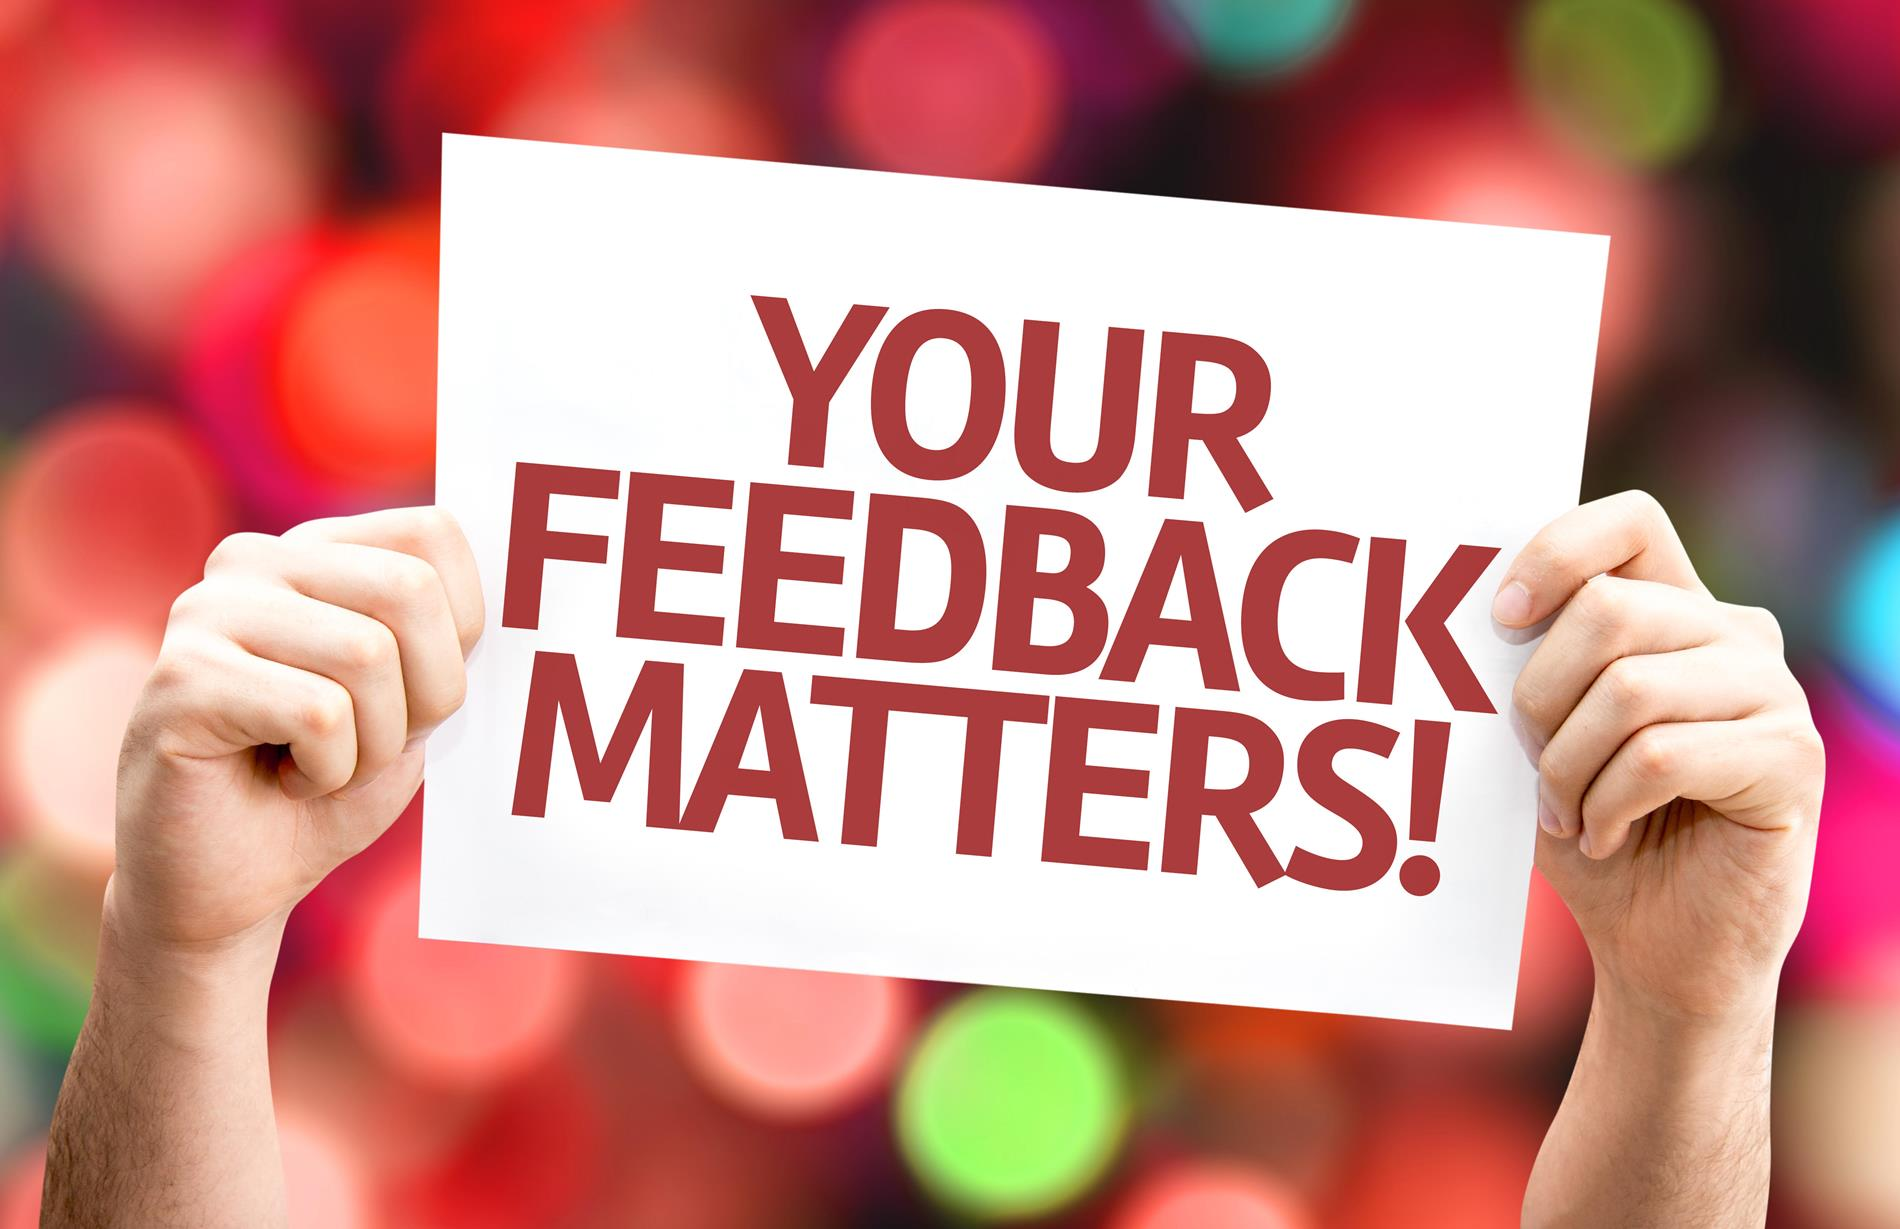 Your Feedback Matters